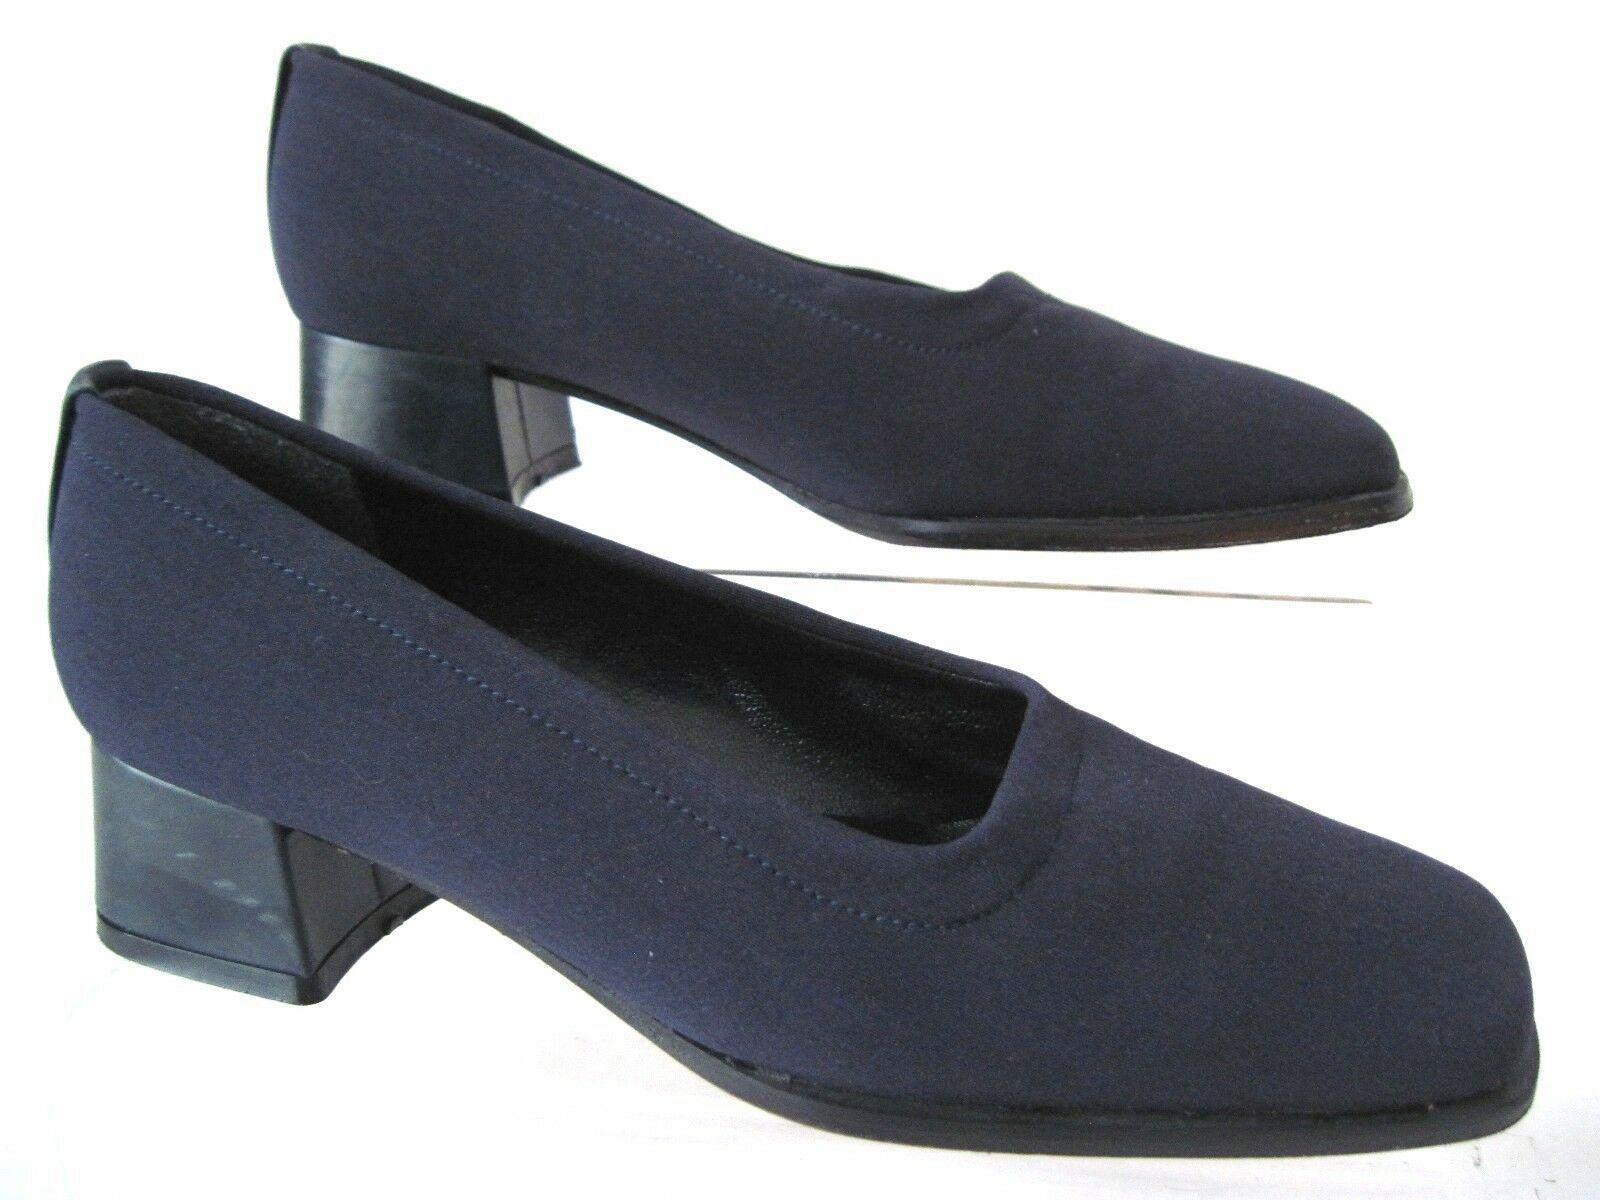 STUART WEITZMAN Navy bluee Fabric Square Toe Heels Pumps Size 4 B Spain